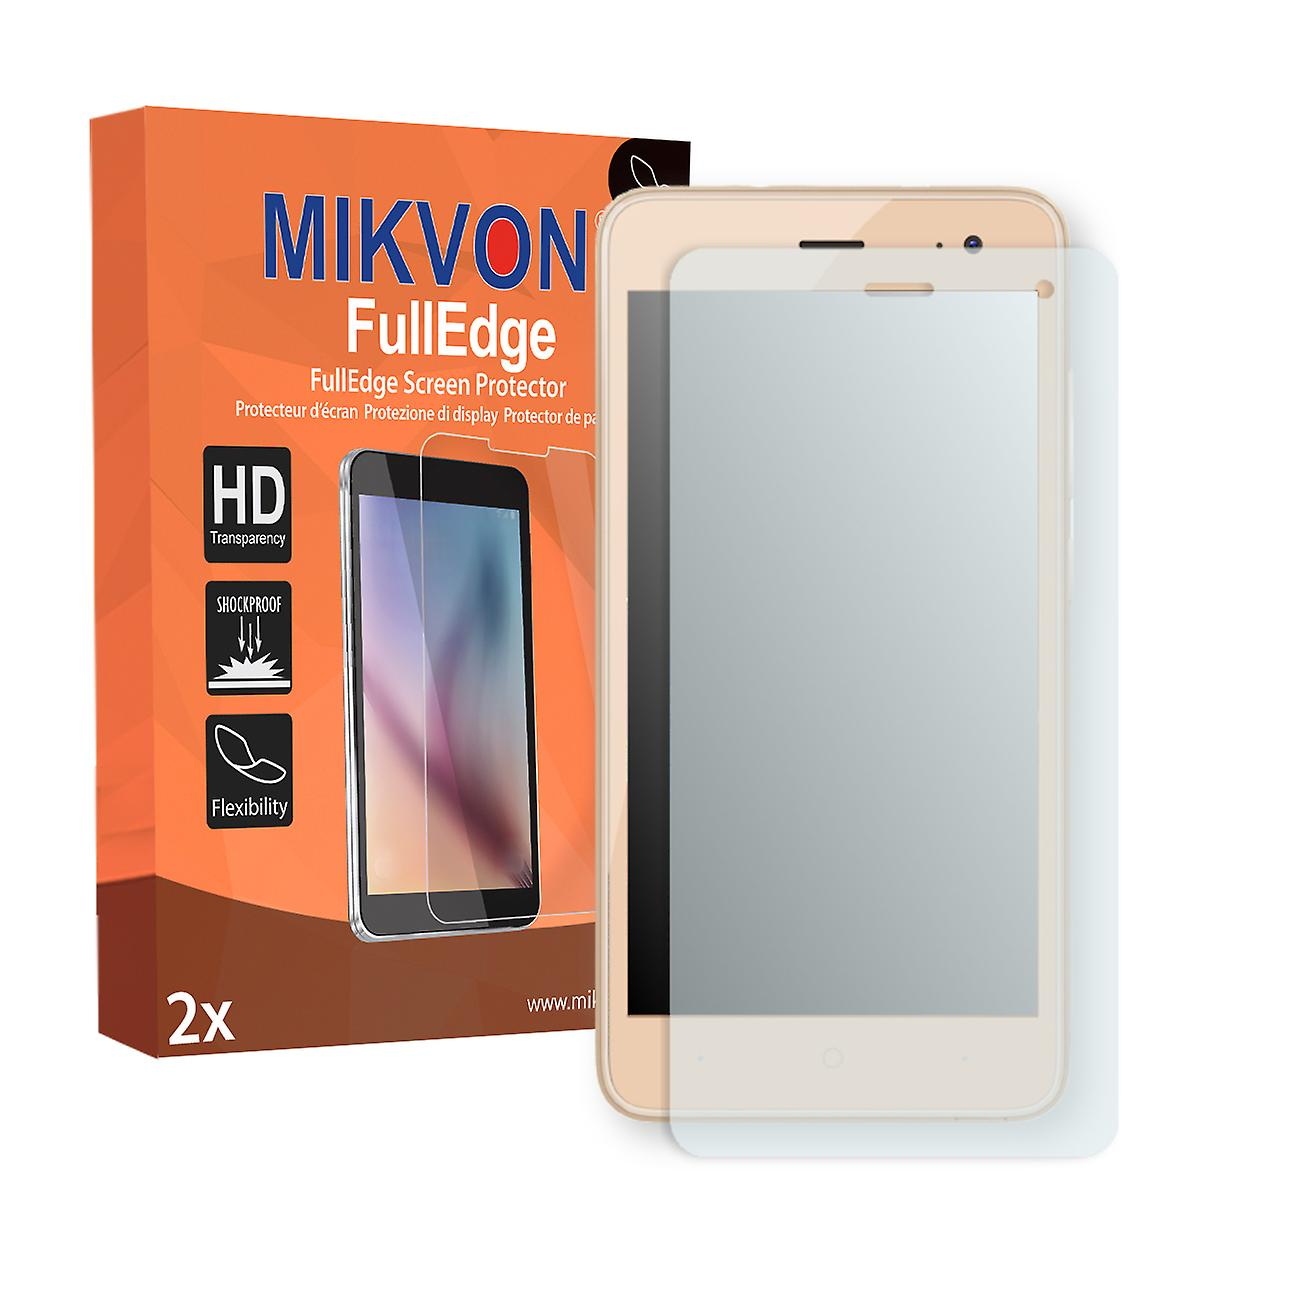 Wiko Jerry 2 screen protector - Mikvon FullEdge (screen protector with full protection and custom fit for the curved display)